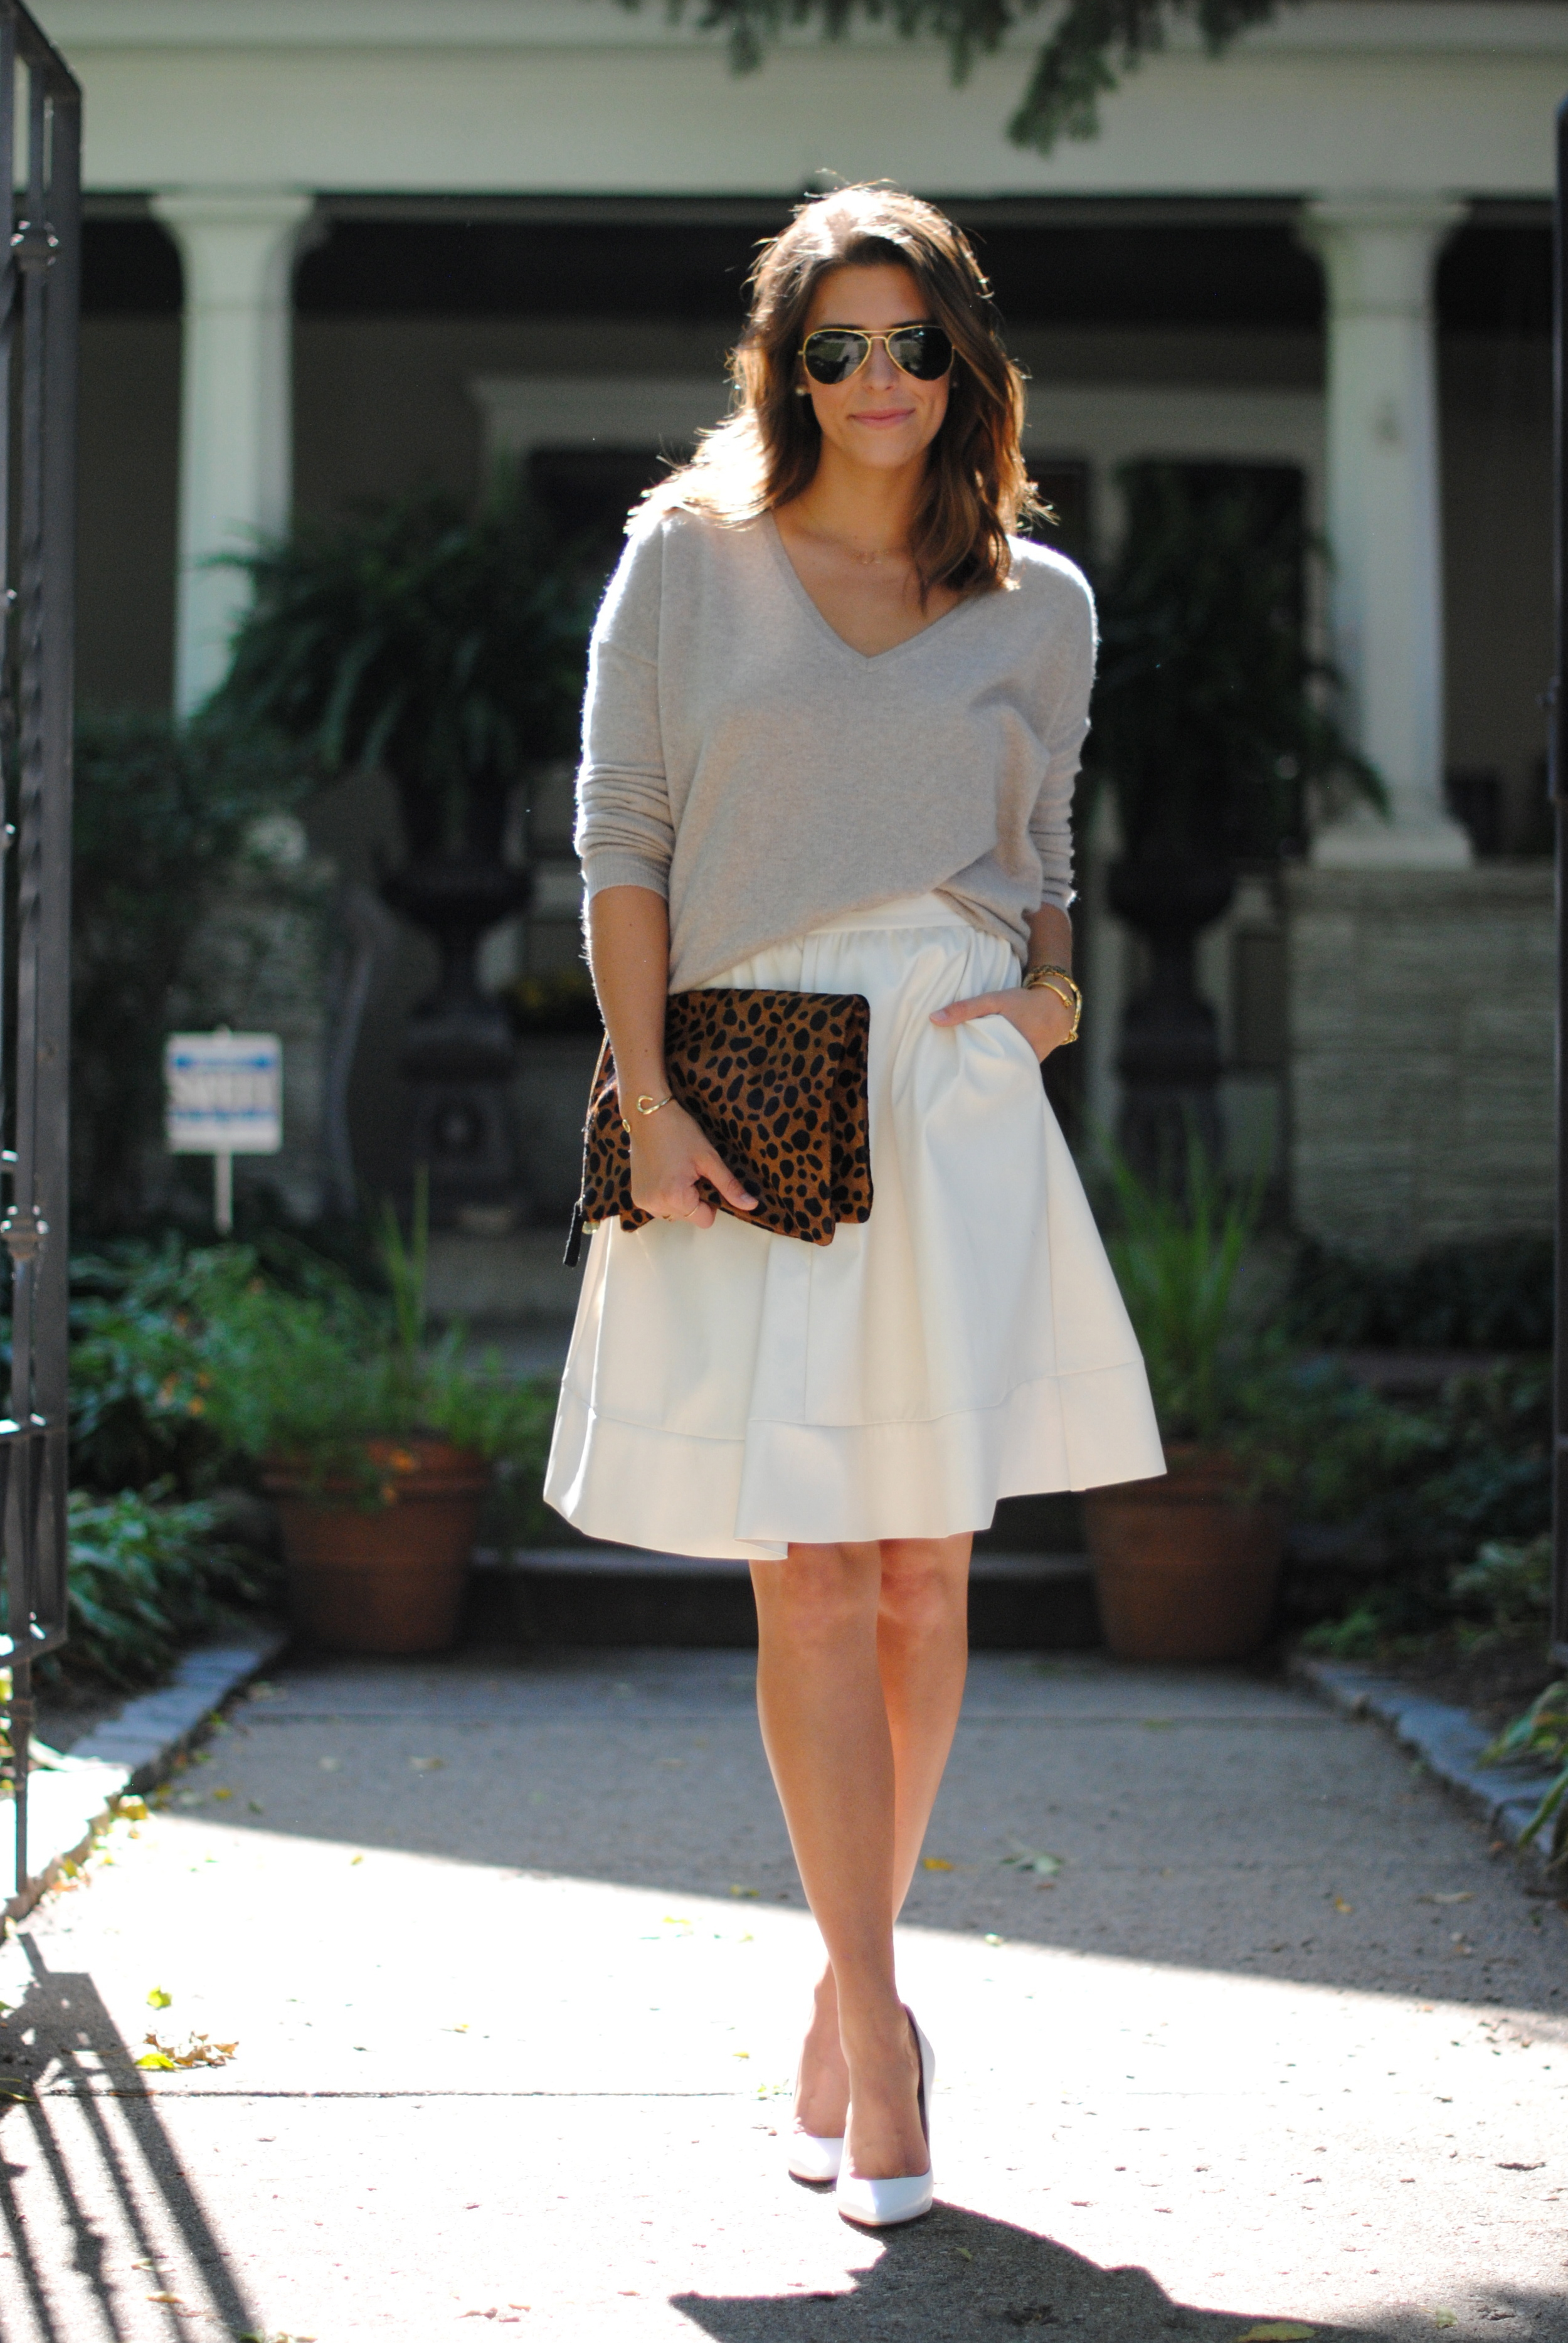 Barrow & Grove cashmere sweater  alternative  here   White faux leather skirt (sold out) alternative  here    Topshop white pumps    Clare Vivier oversized leopard clutch    Ray-Ban Aviators